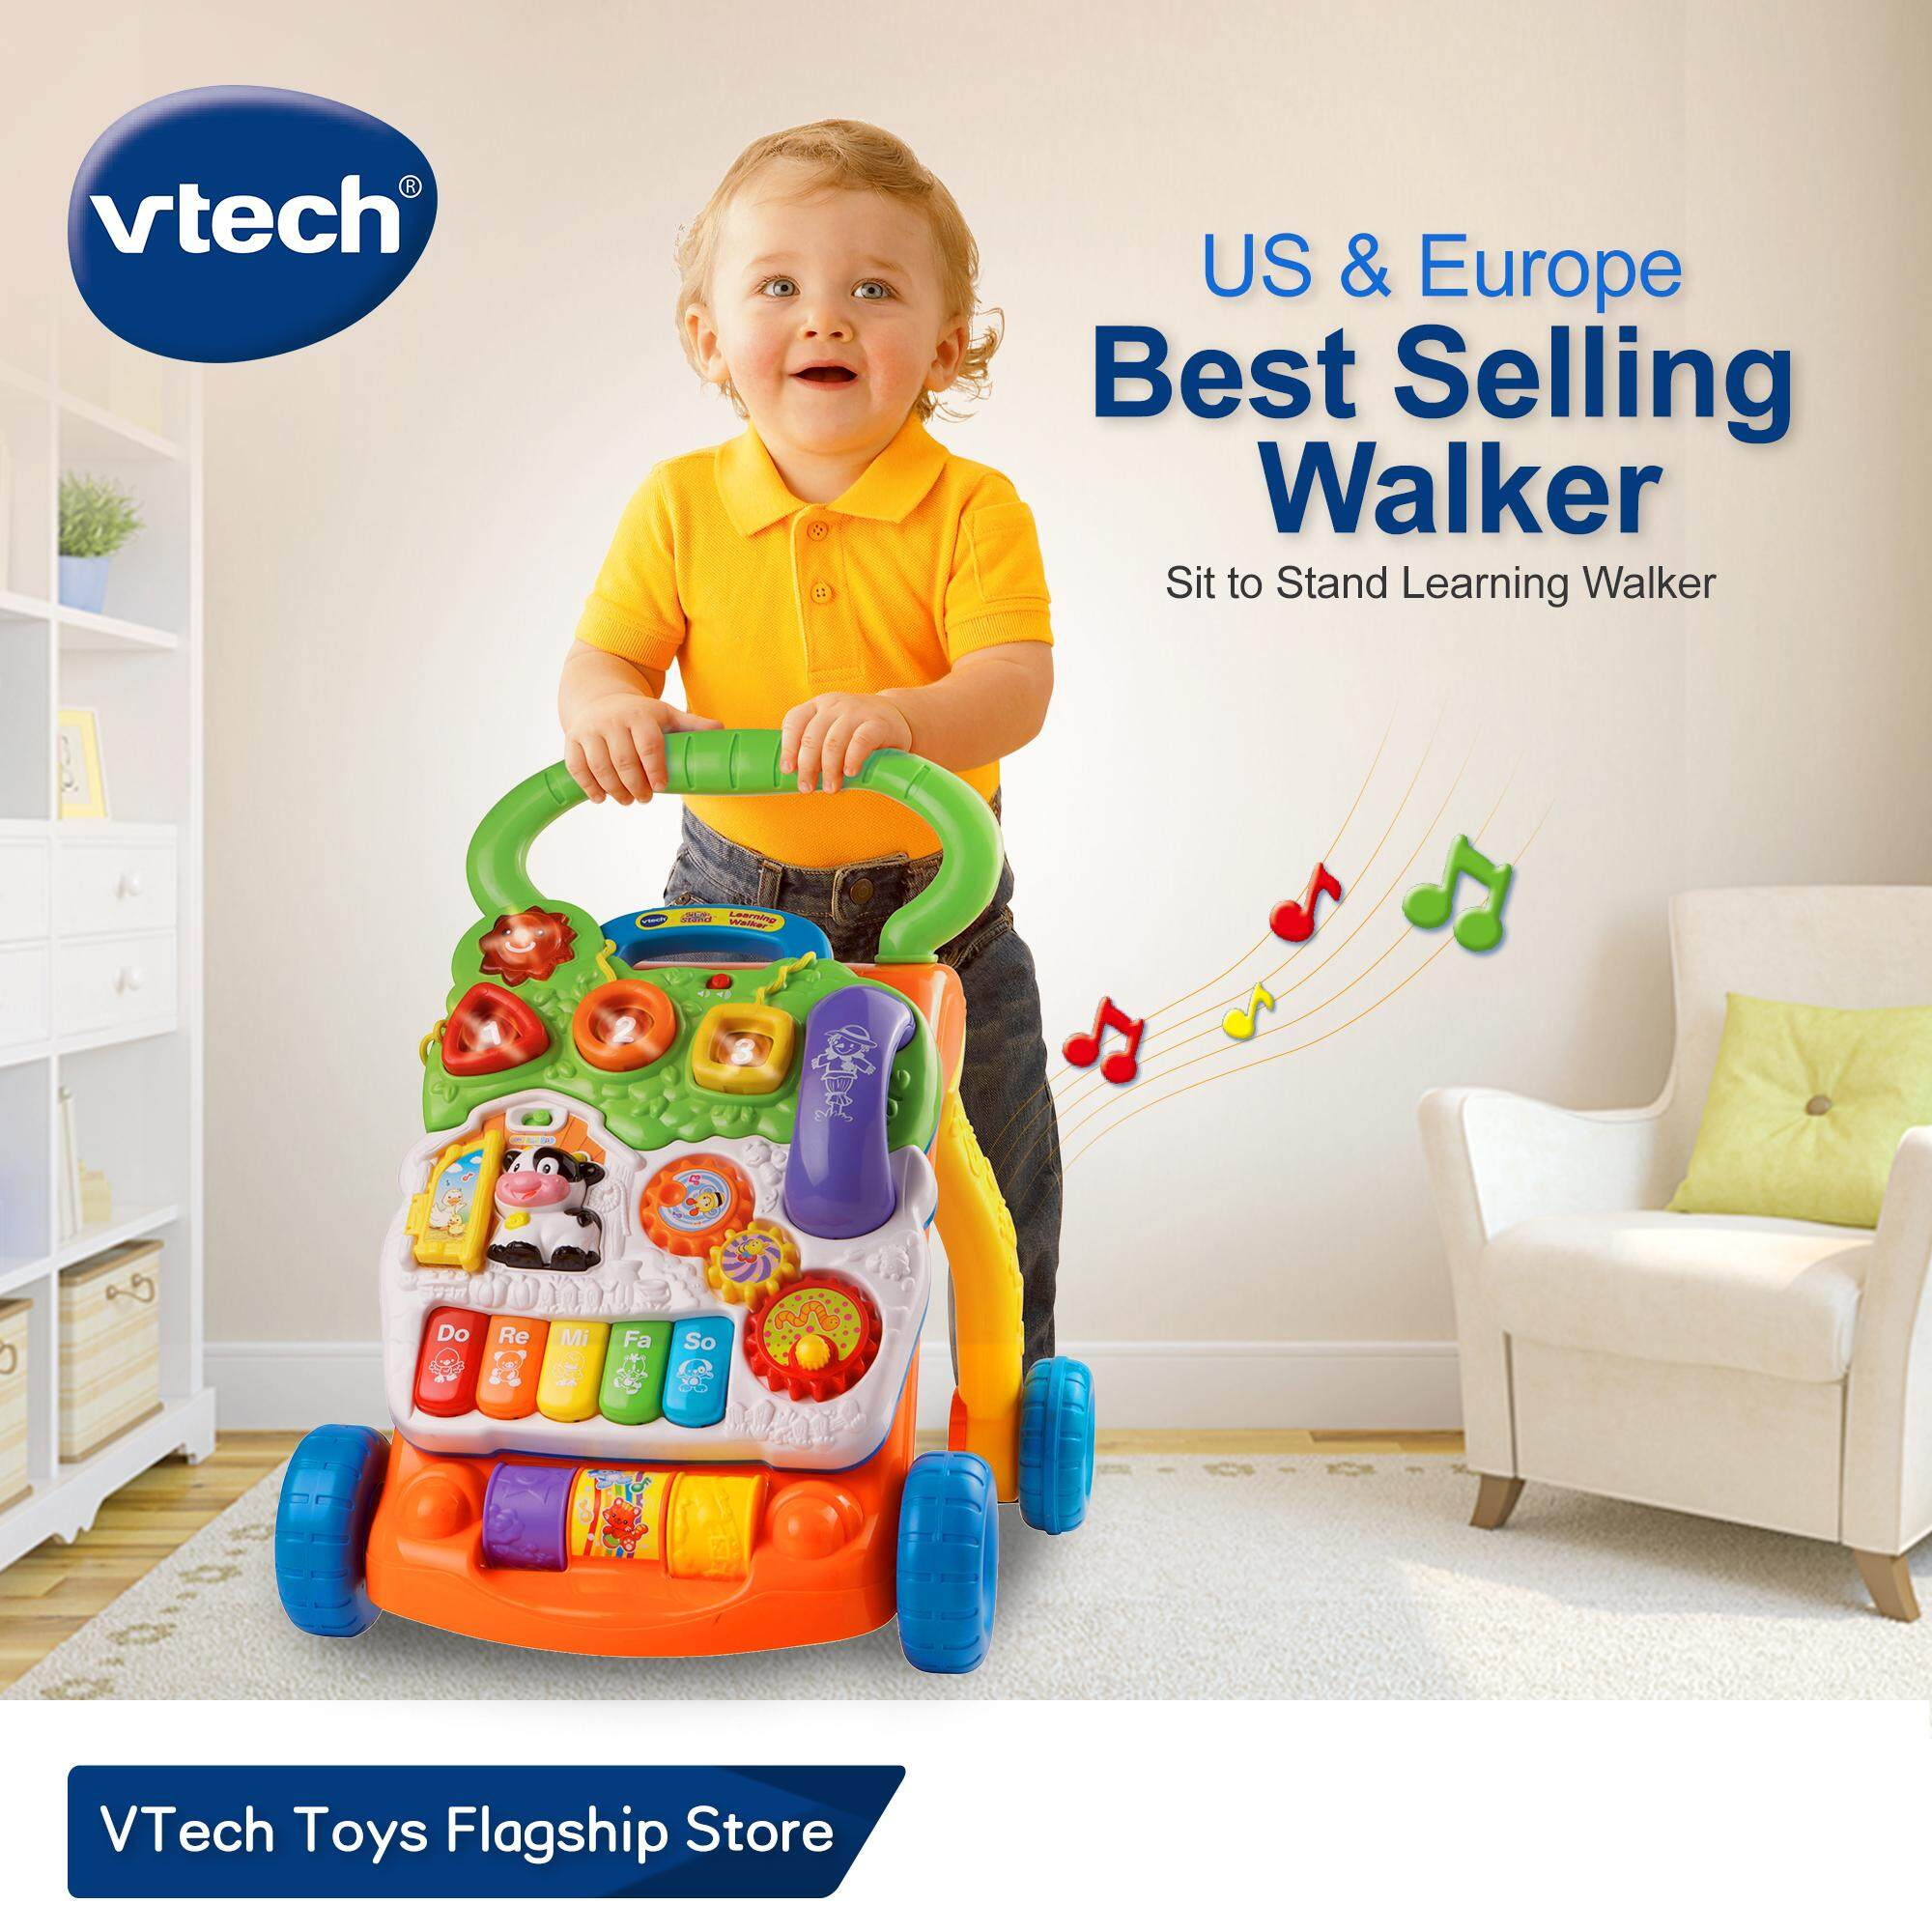 VTech Baby Walker【US & Europe #1】with Speed Control, Music, Educational Learning SIt-to-Stand Learning Walker Toys for 9 - 36 Months Baby Infant Toys 1 years